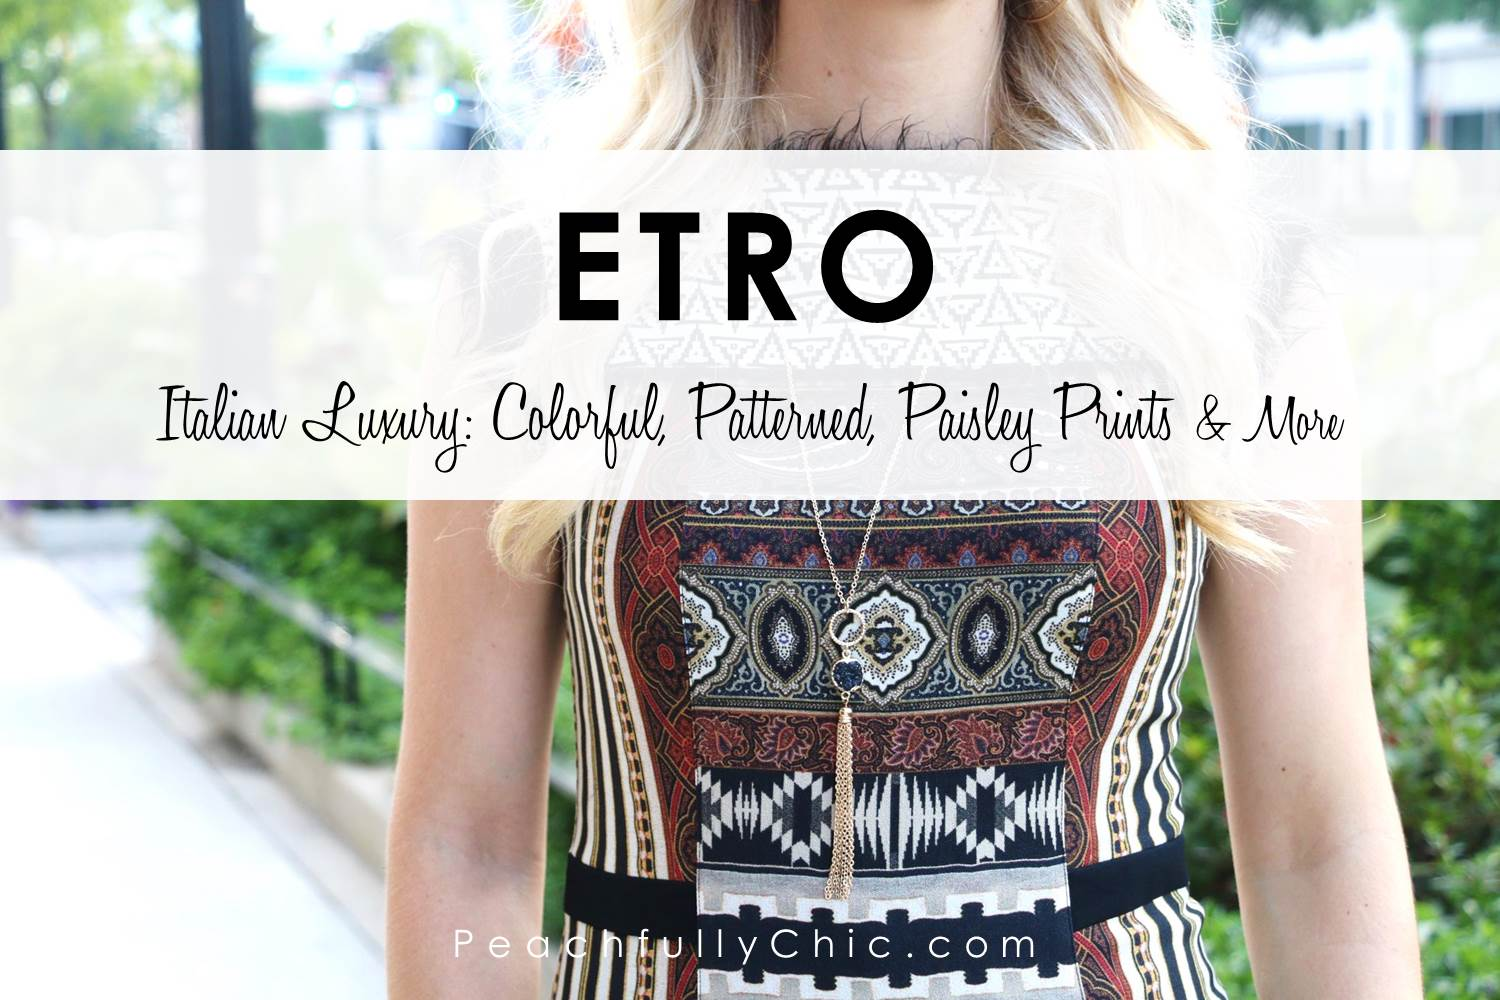 Etro-Atlanta-Buckhead-Shops-Review-main